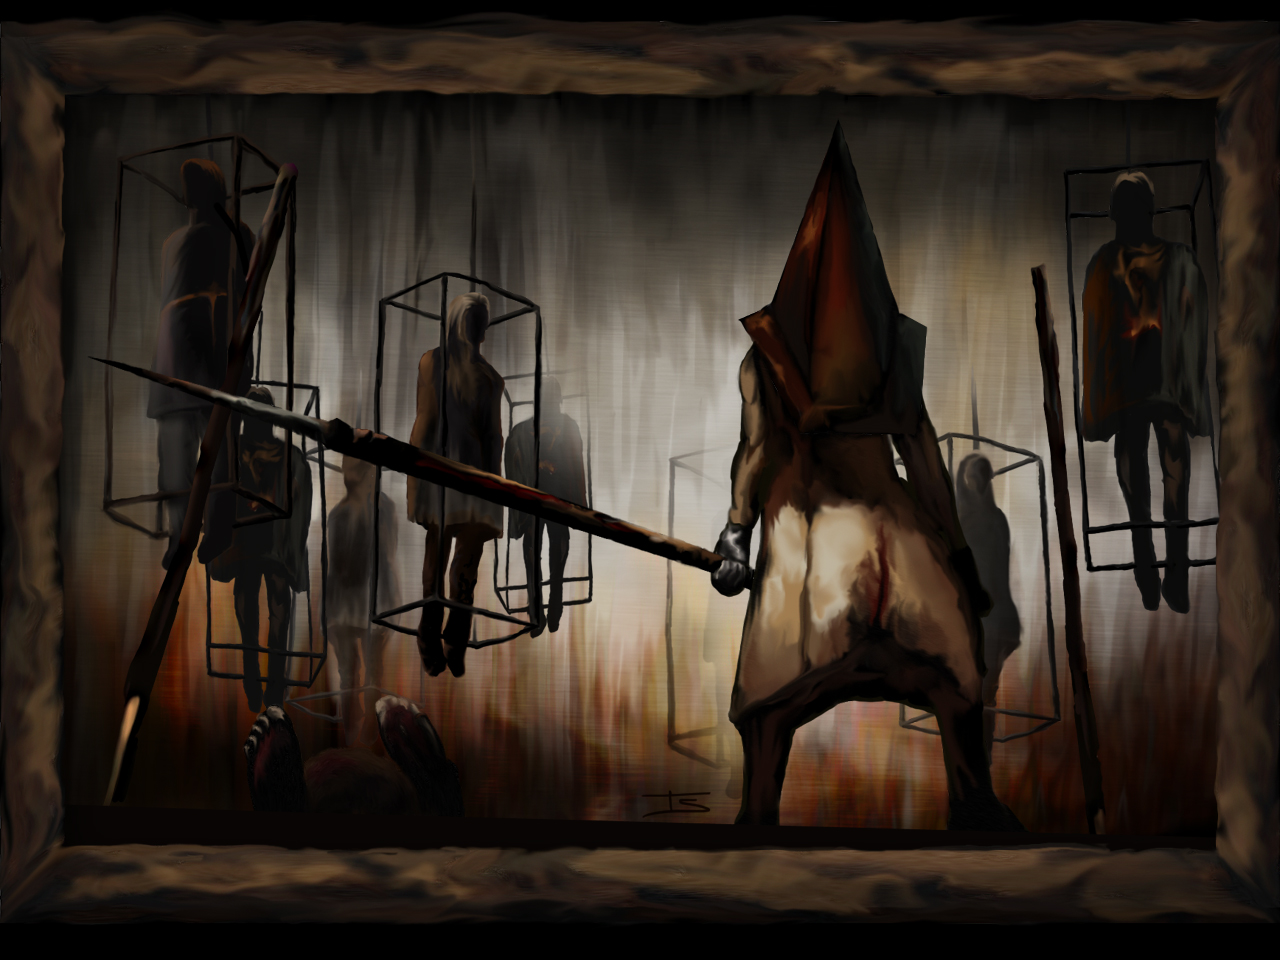 http://images4.wikia.nocookie.net/__cb20120404043123/silent/images/a/a6/Silent-hill-pyramid-head-Frikarte.jpg